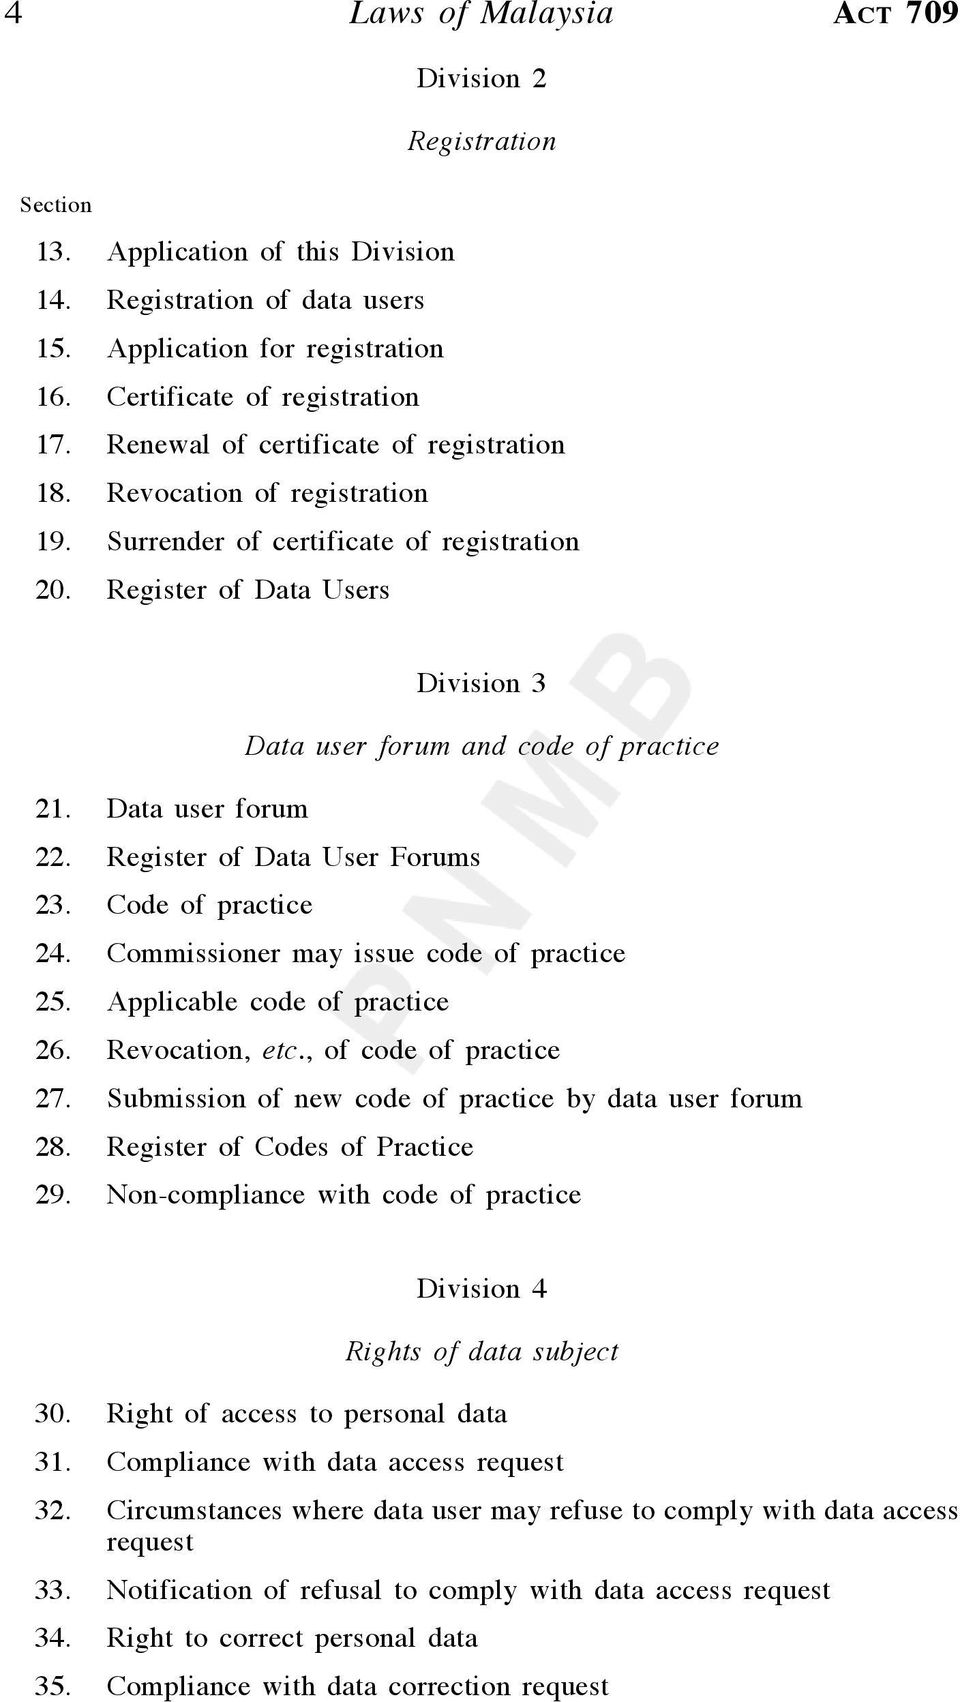 Data user forum 22. Register of Data User Forums 23. Code of practice 24. Commissioner may issue code of practice 25. Applicable code of practice 26. Revocation, etc., of code of practice 27.